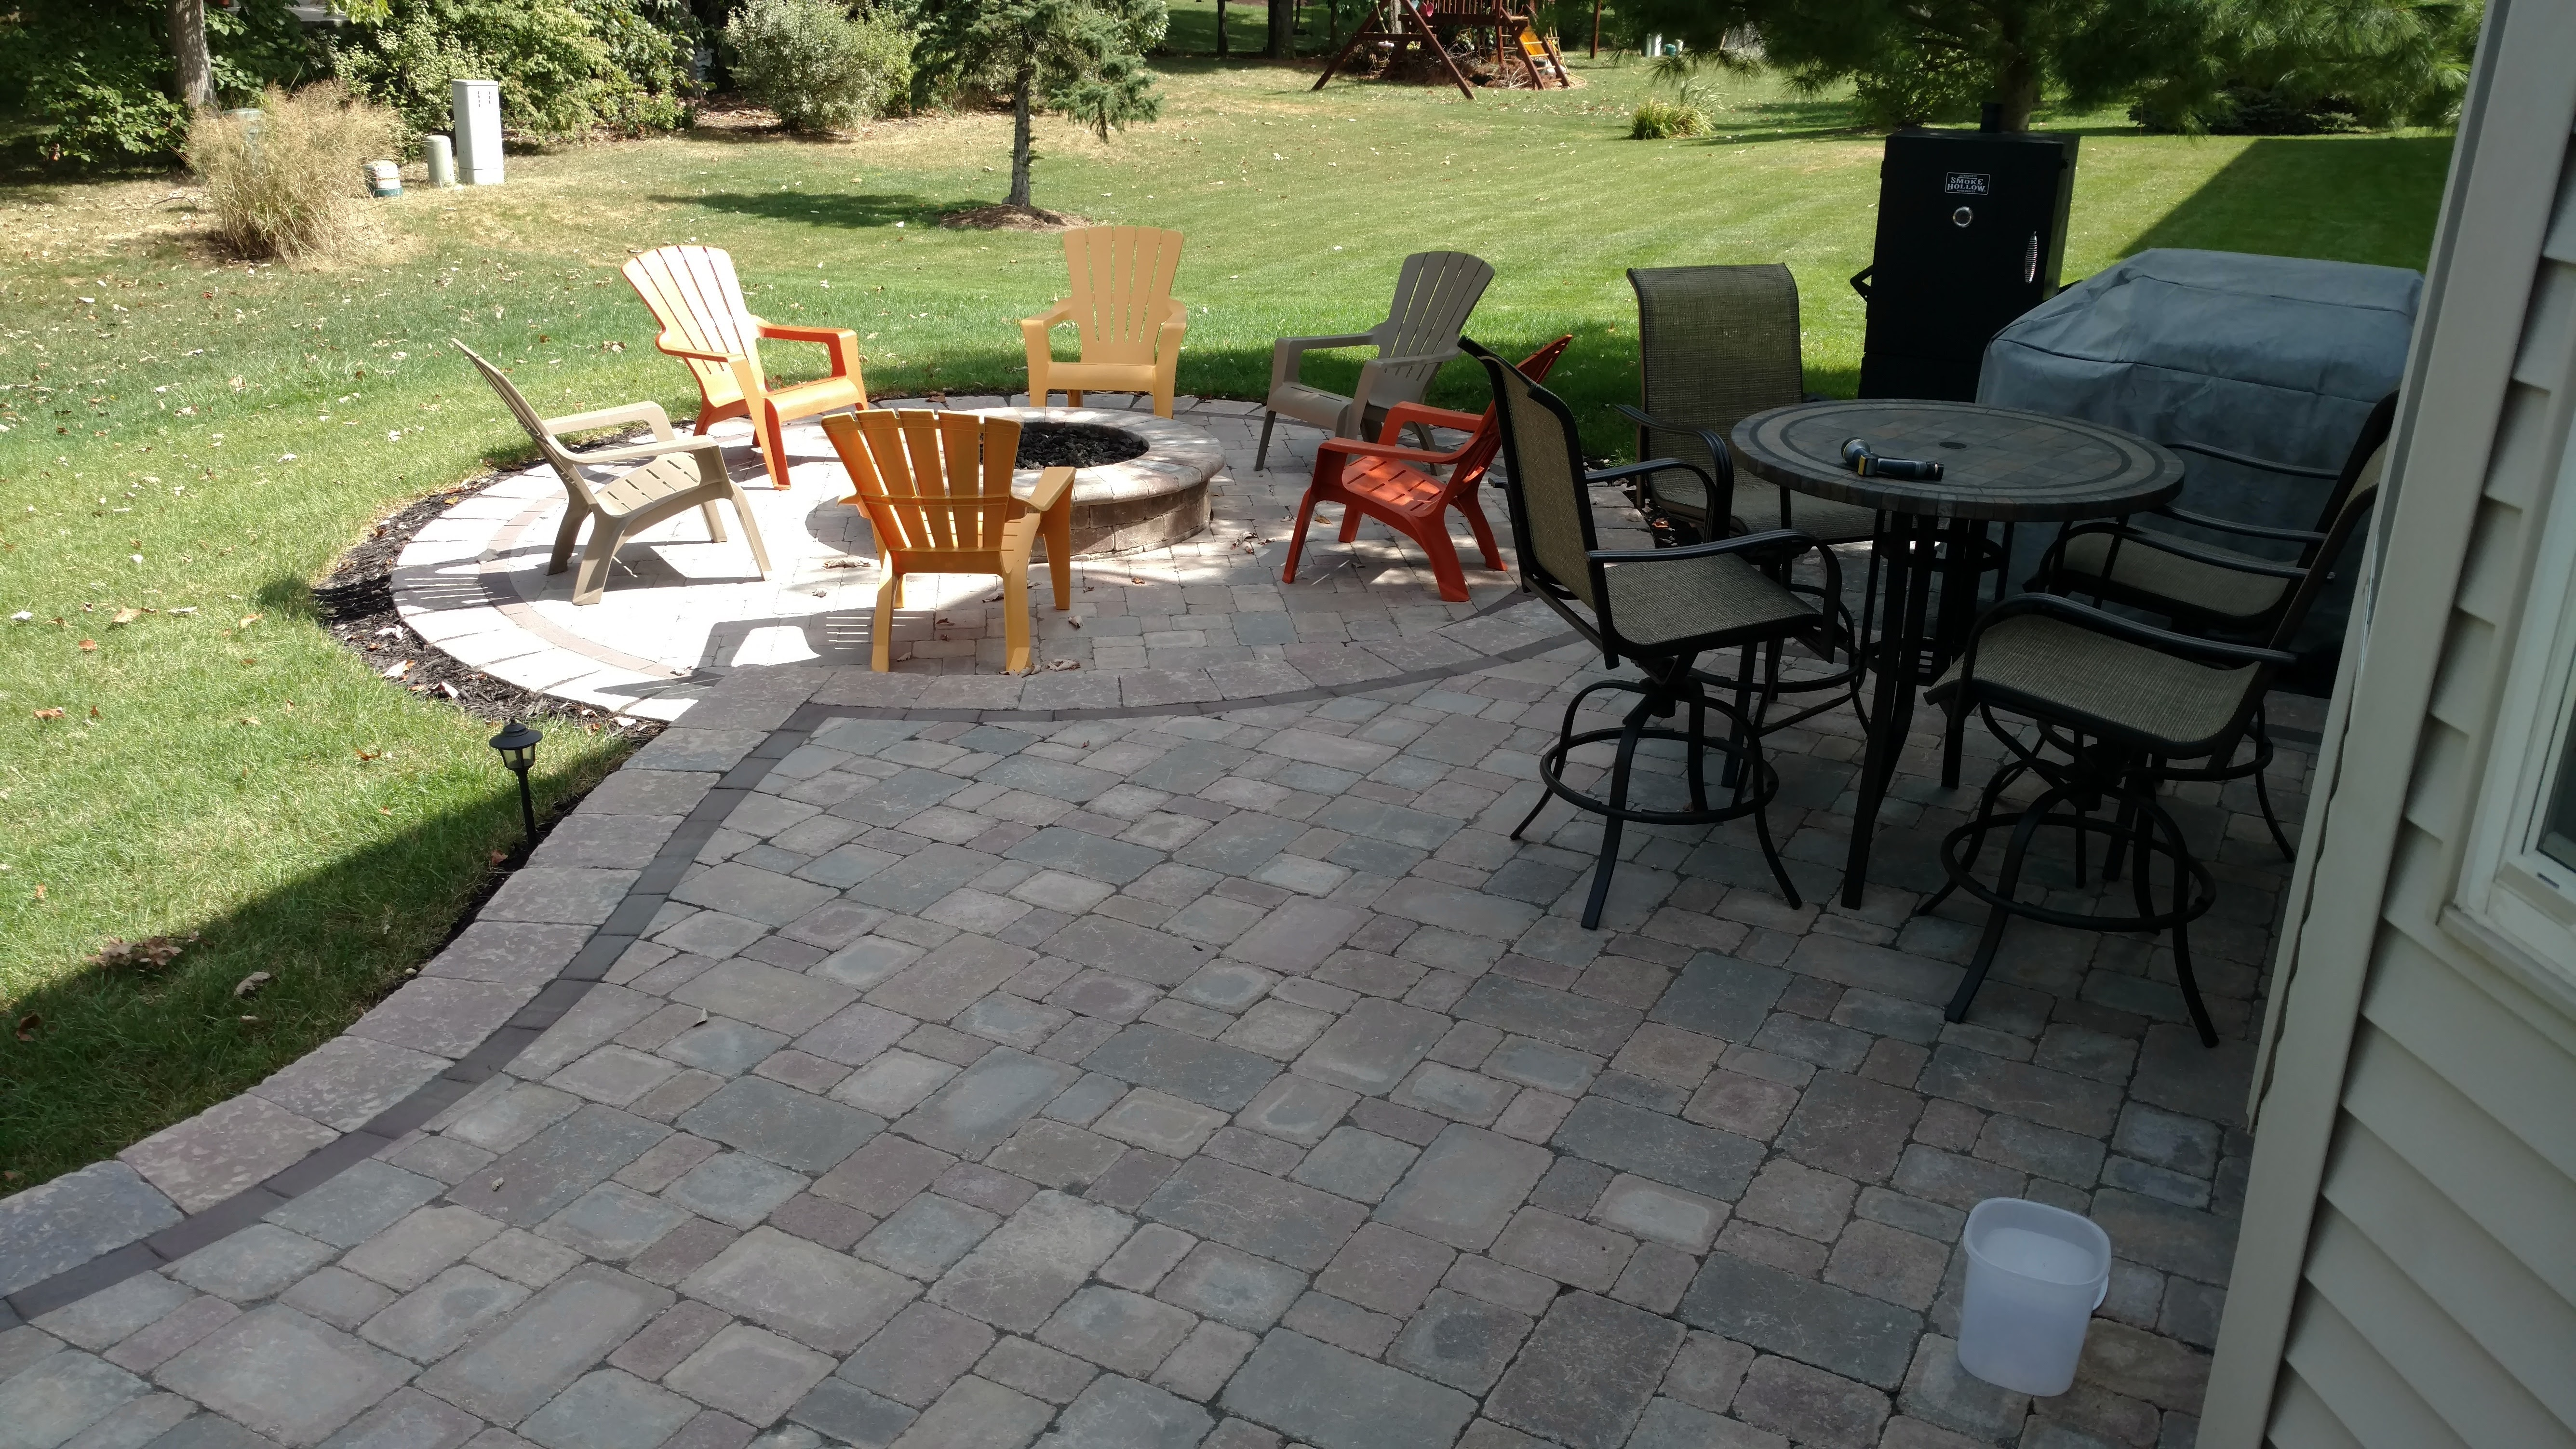 We Used Unilock Stonehenge Pavers On The Field Of The Patio. For The  Privacy/retaining Wall We Used Unilock Brussels Dimensional Stone And For  The Accent ...